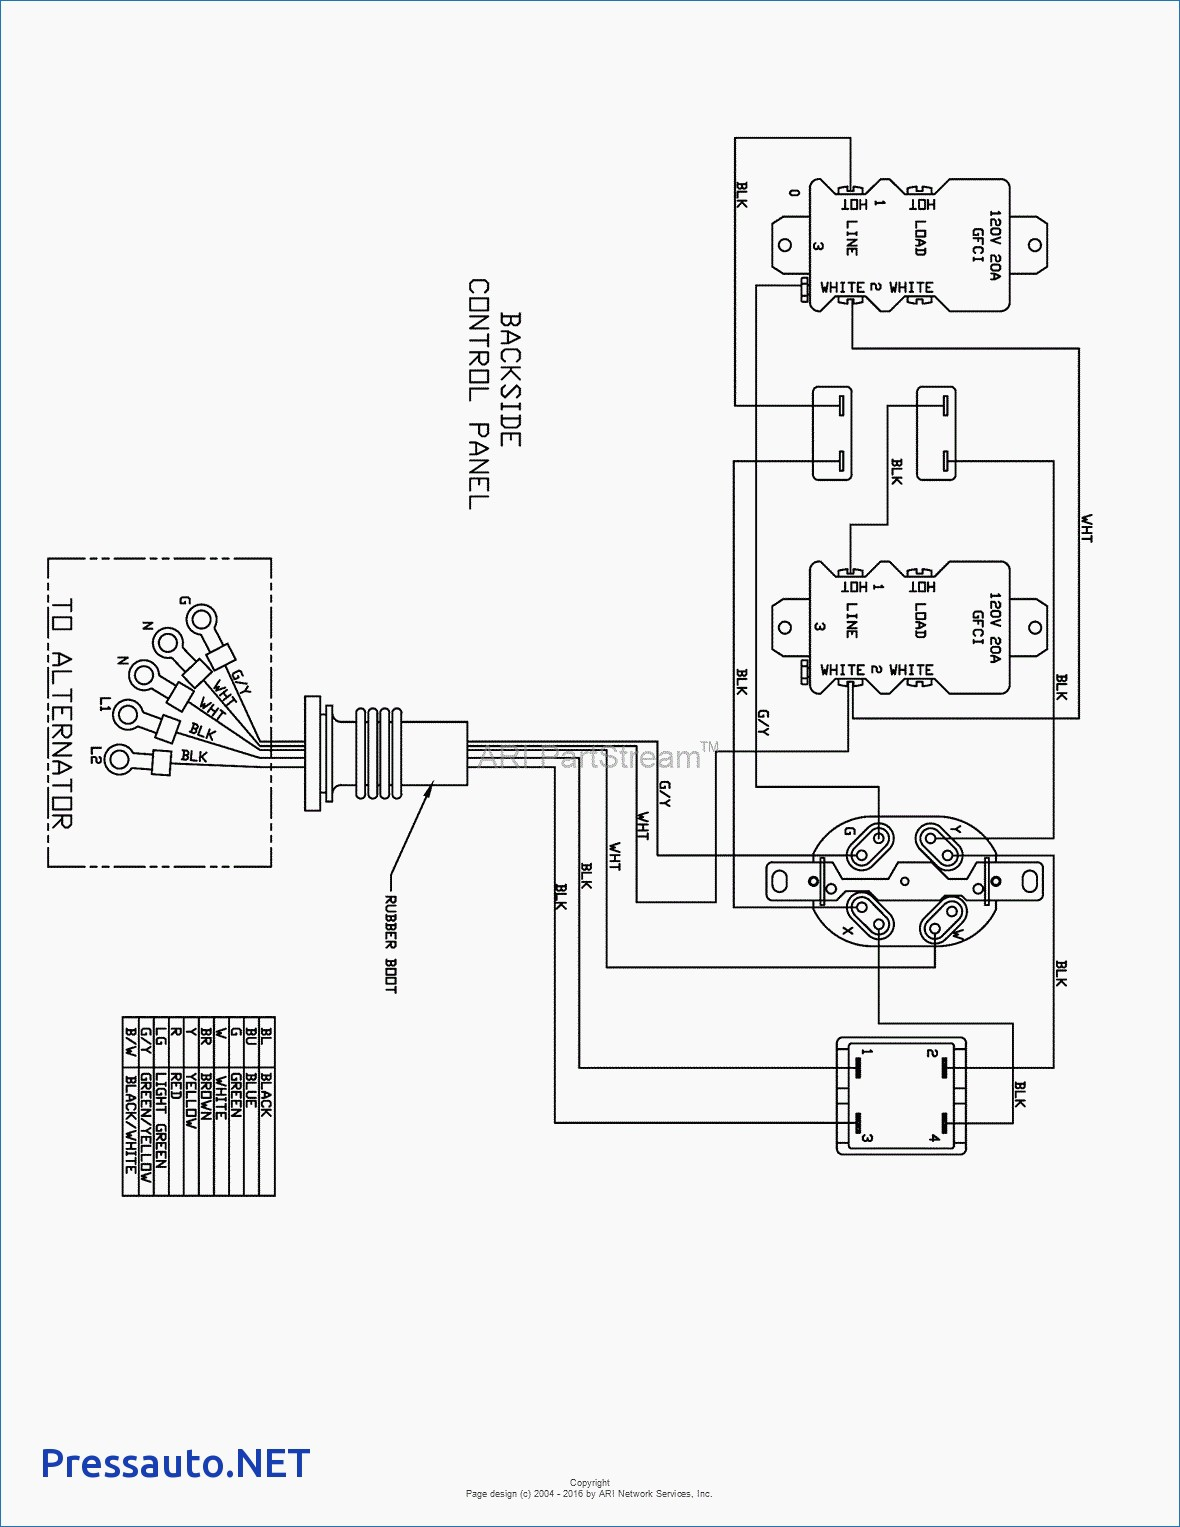 [DIAGRAM] Reliance Generator Transfer Switch Wiring